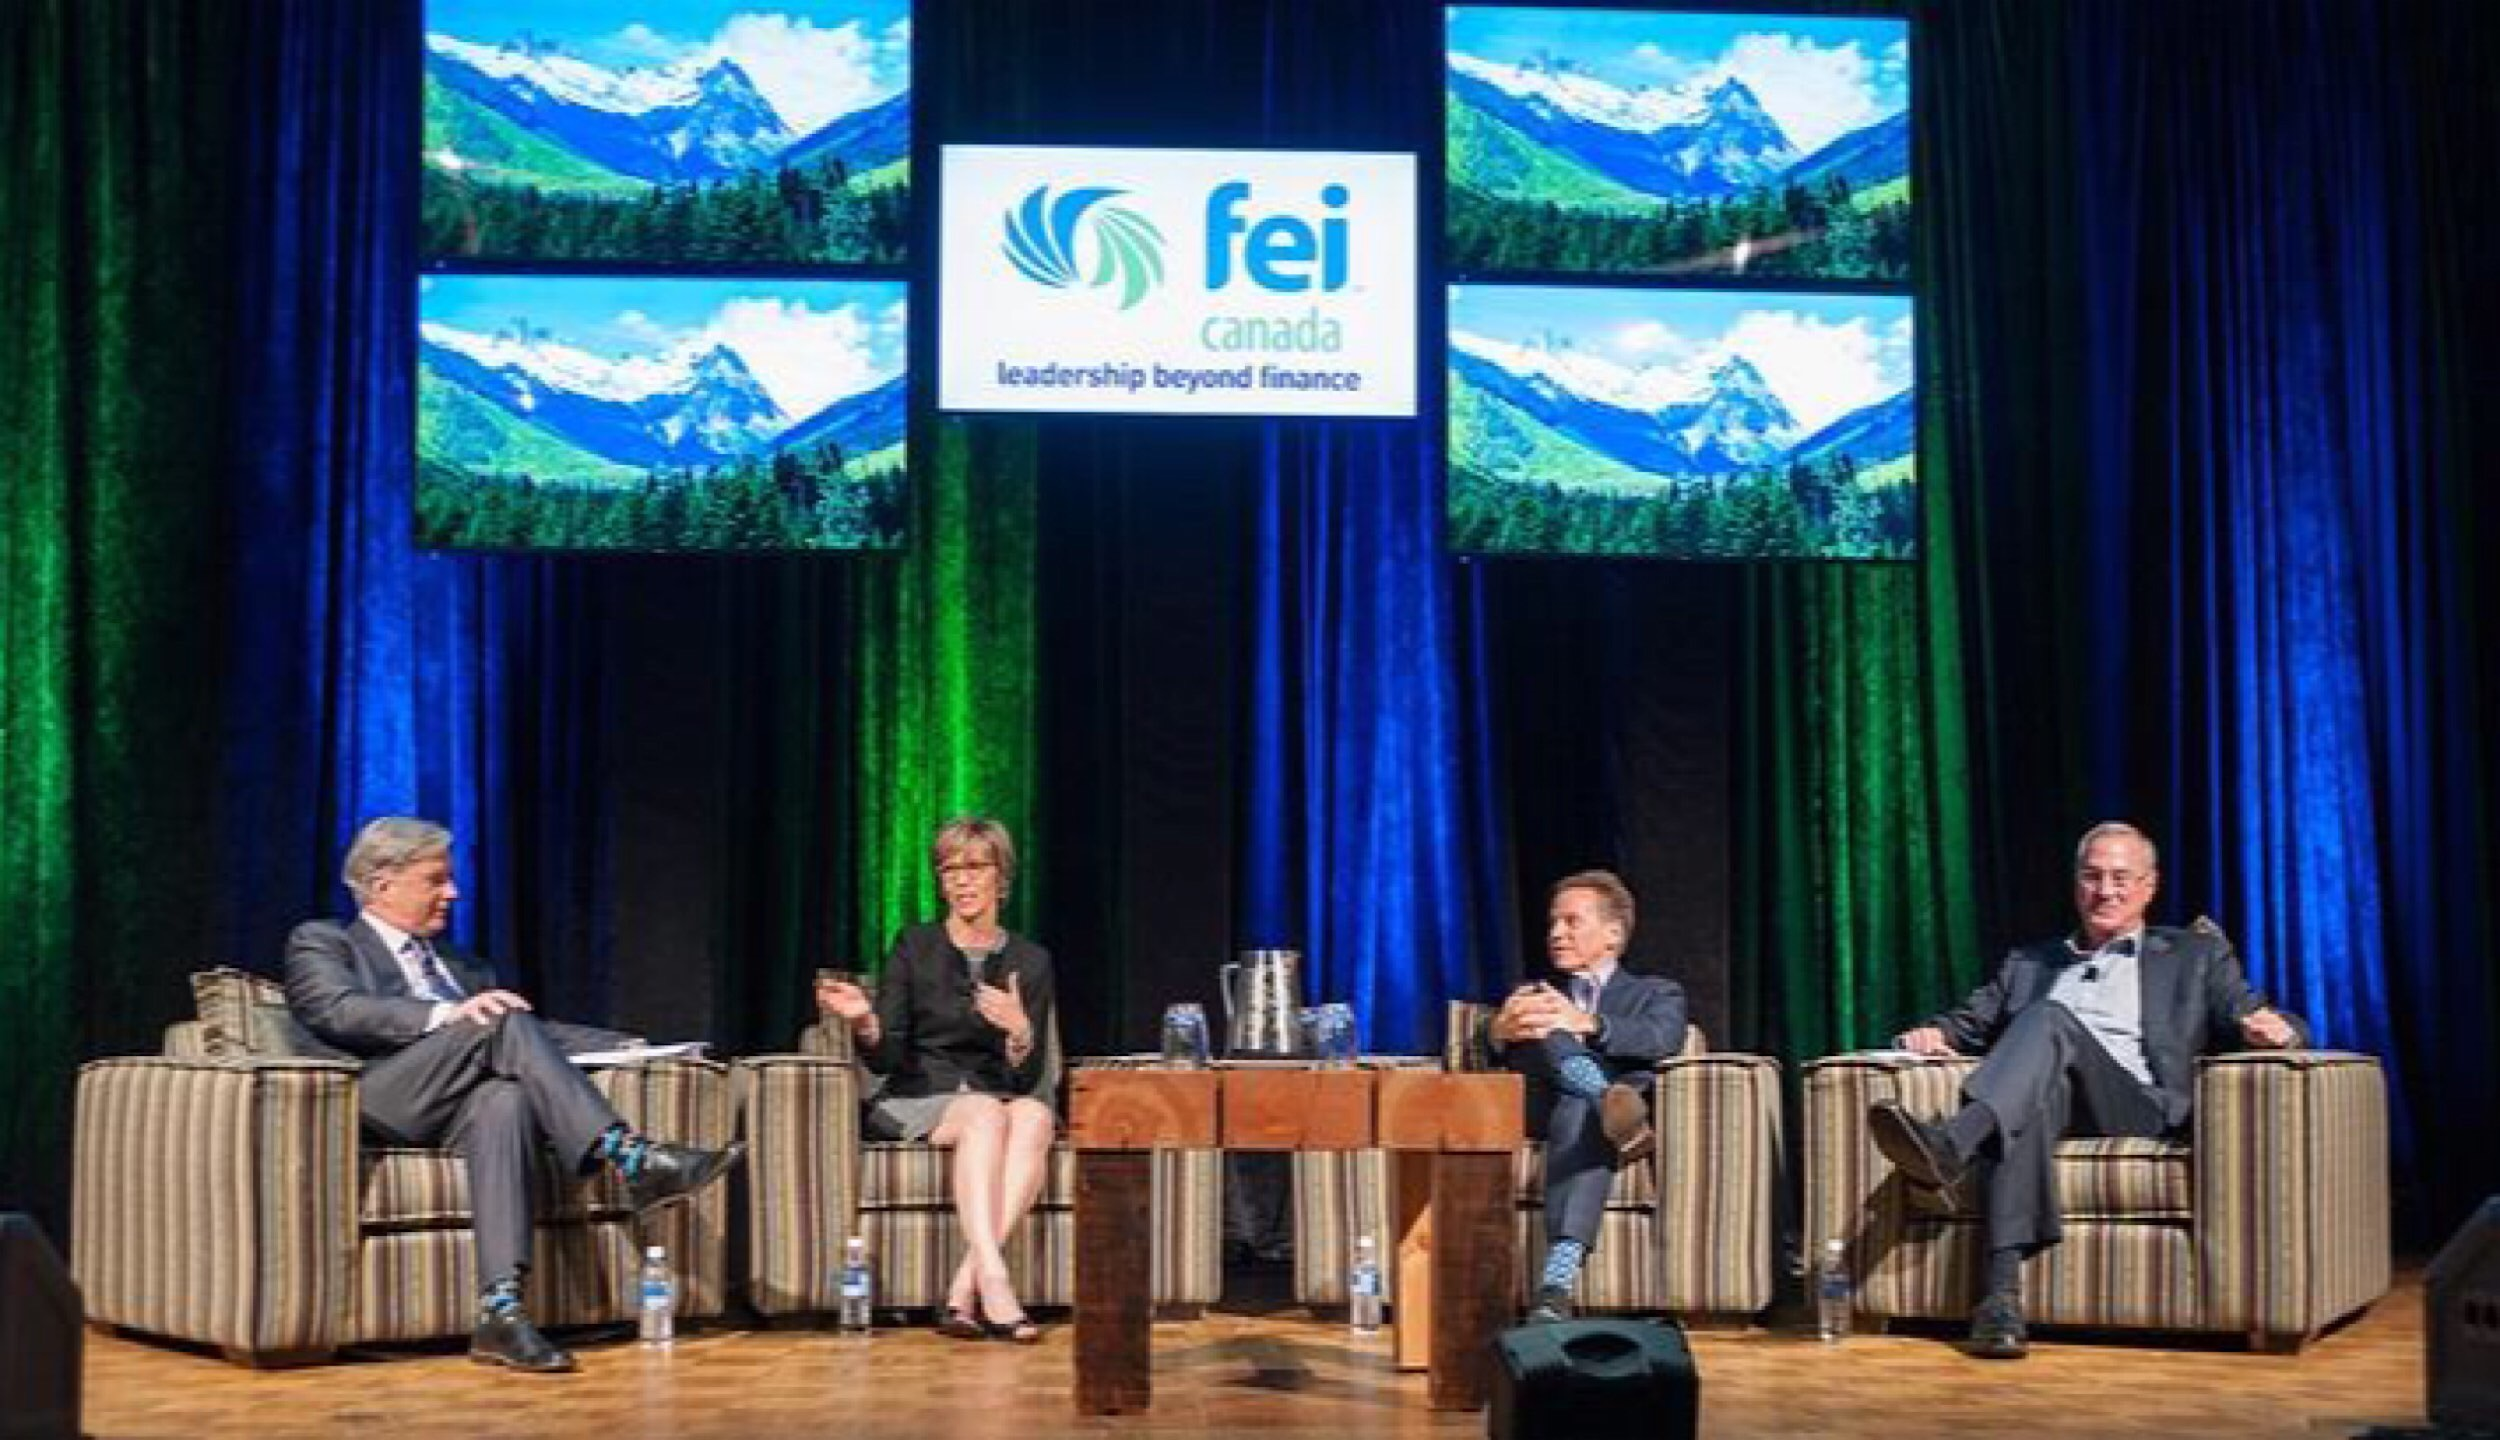 FEI Canada's annual conference attracts the top tier of Canada's financial leadership to meet about the future of the CFO.